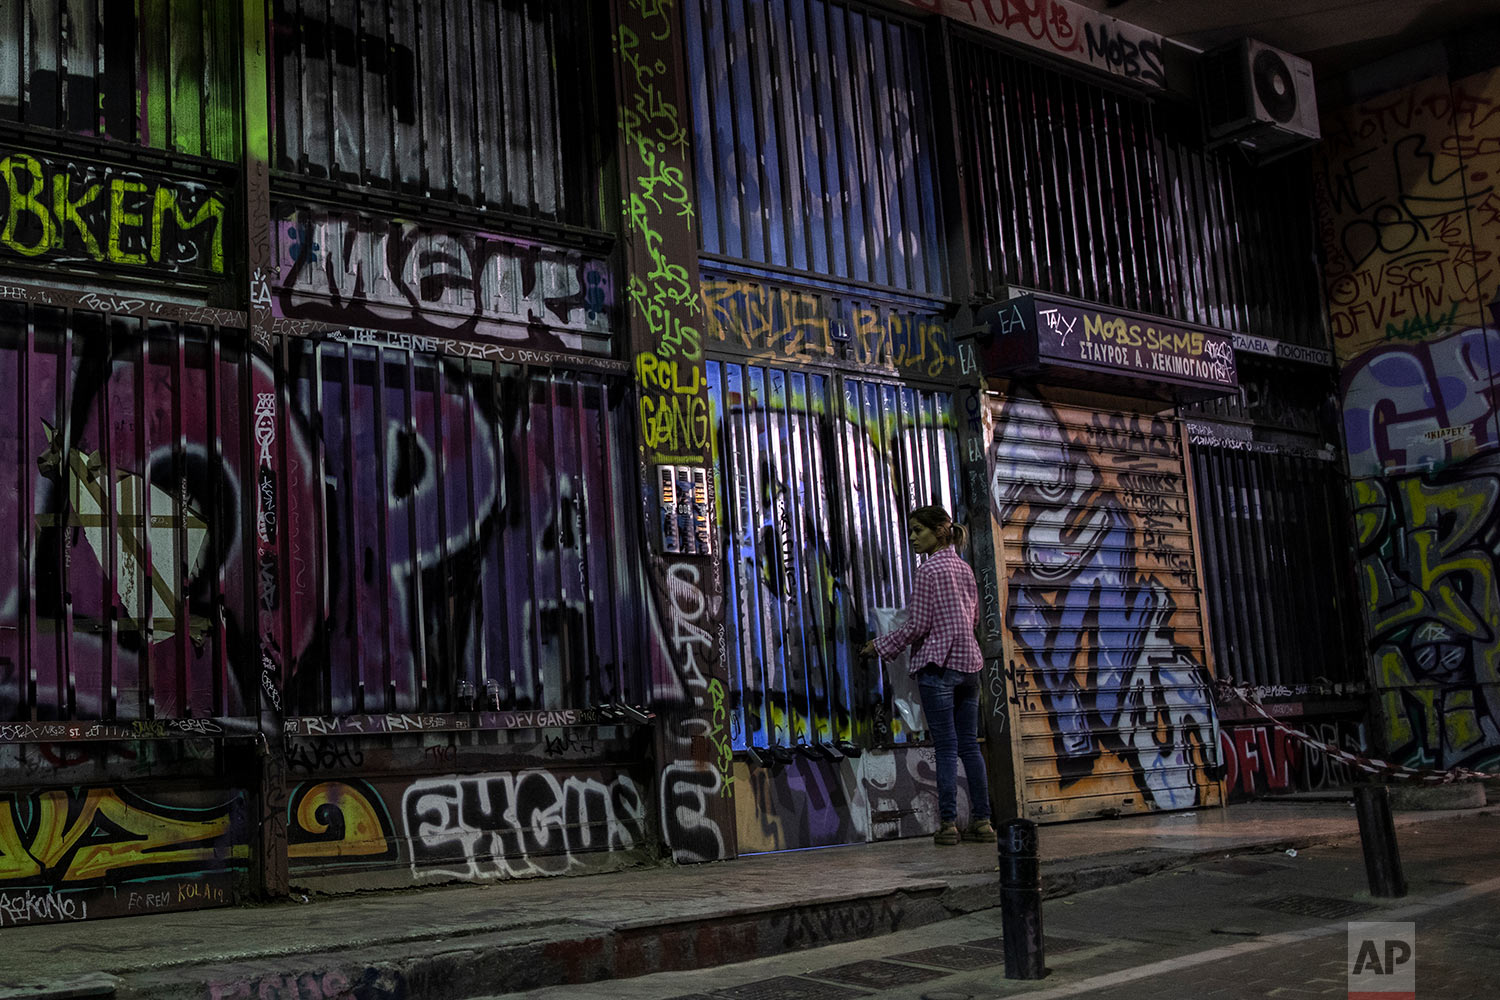 A woman opens with her key the entrance of a building which is covered with graffiti in Psiri district, central Athens, July 25, 2019. (AP Photo/Petros Giannakouris)